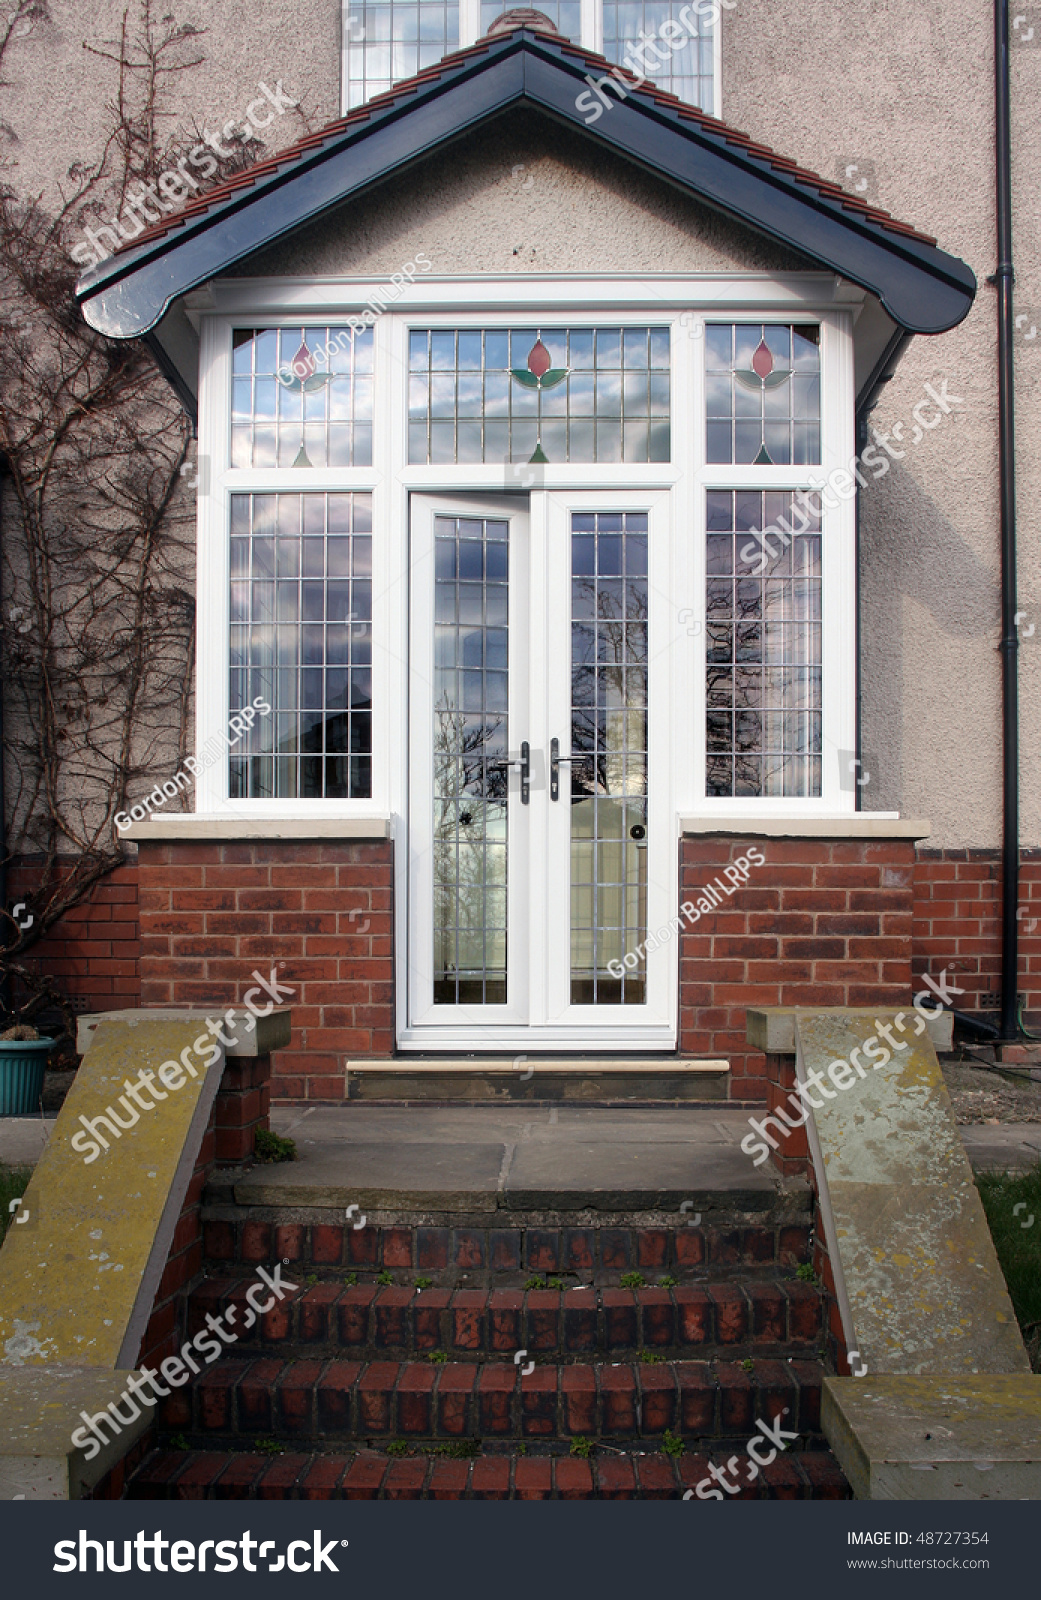 House Entrance Enlosed With A Upvc Porch Stock Photo 48727354 ...